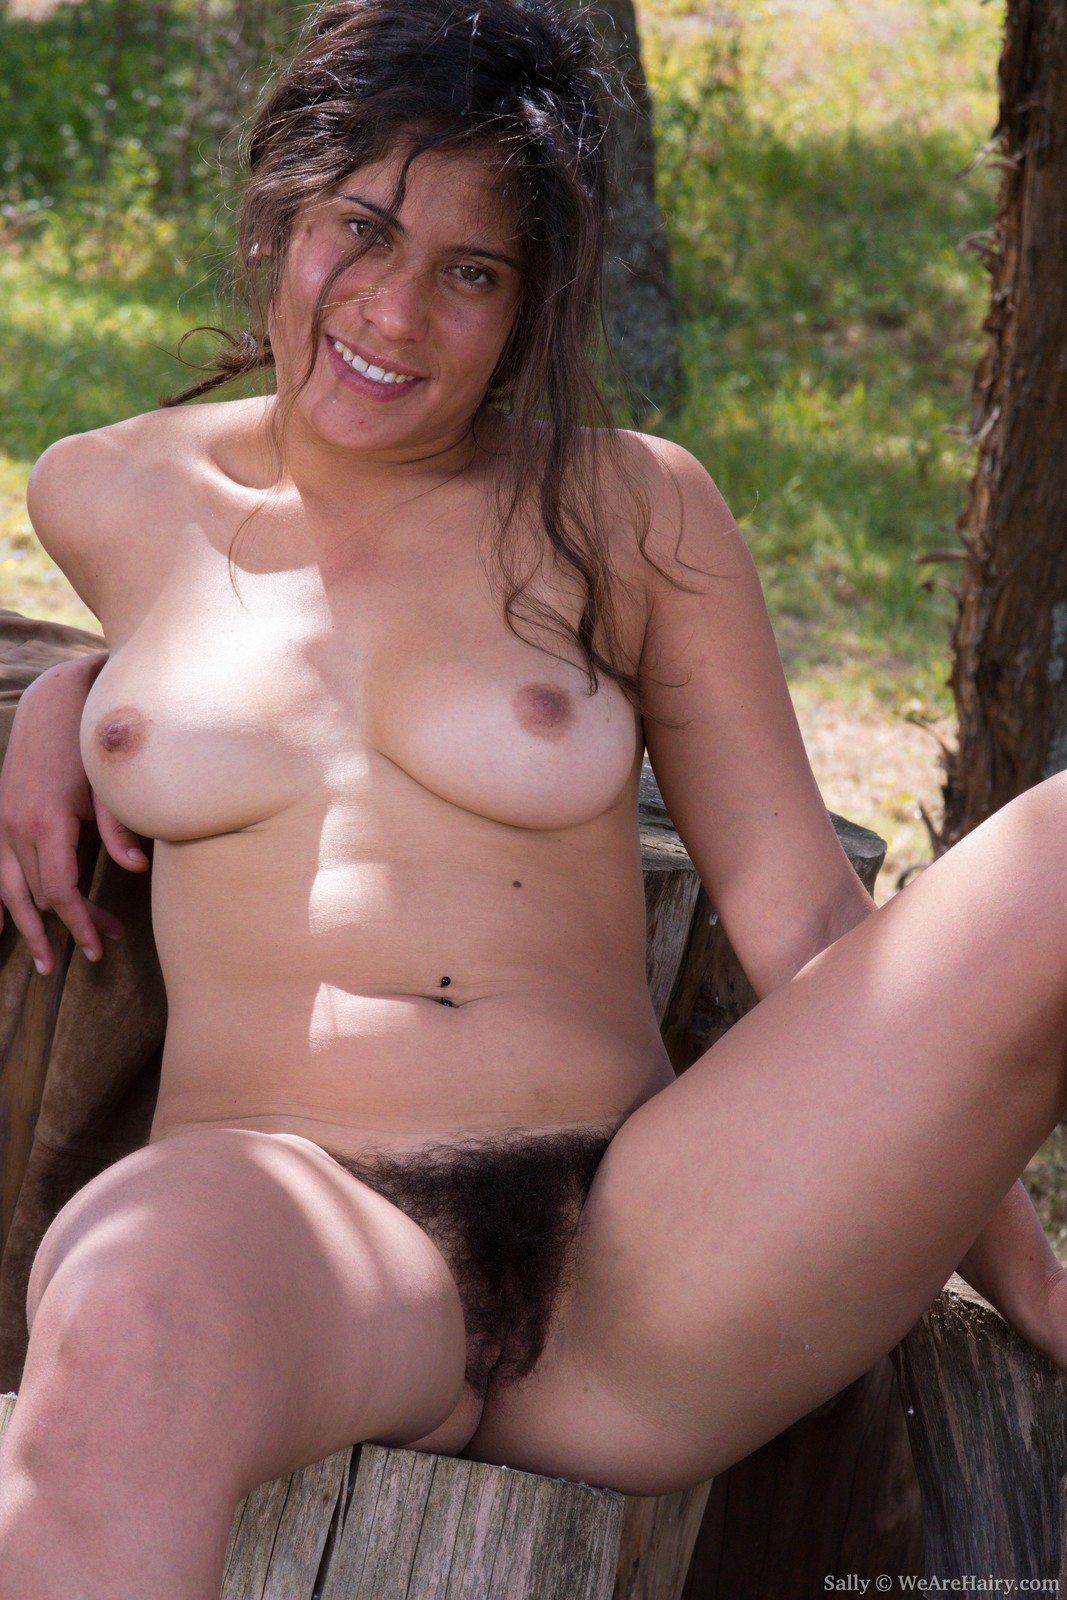 sally-is-outdoors-enjoying-the-sun-and-wants-to-get-some-sun-on-her-naked-body.-she-strips-naked-and-shows-off-her-36c-breasts-and-hairy-pussy.-her-body-is-sexy-outside-and-her-bush-is-so-beautiful.16.jpg